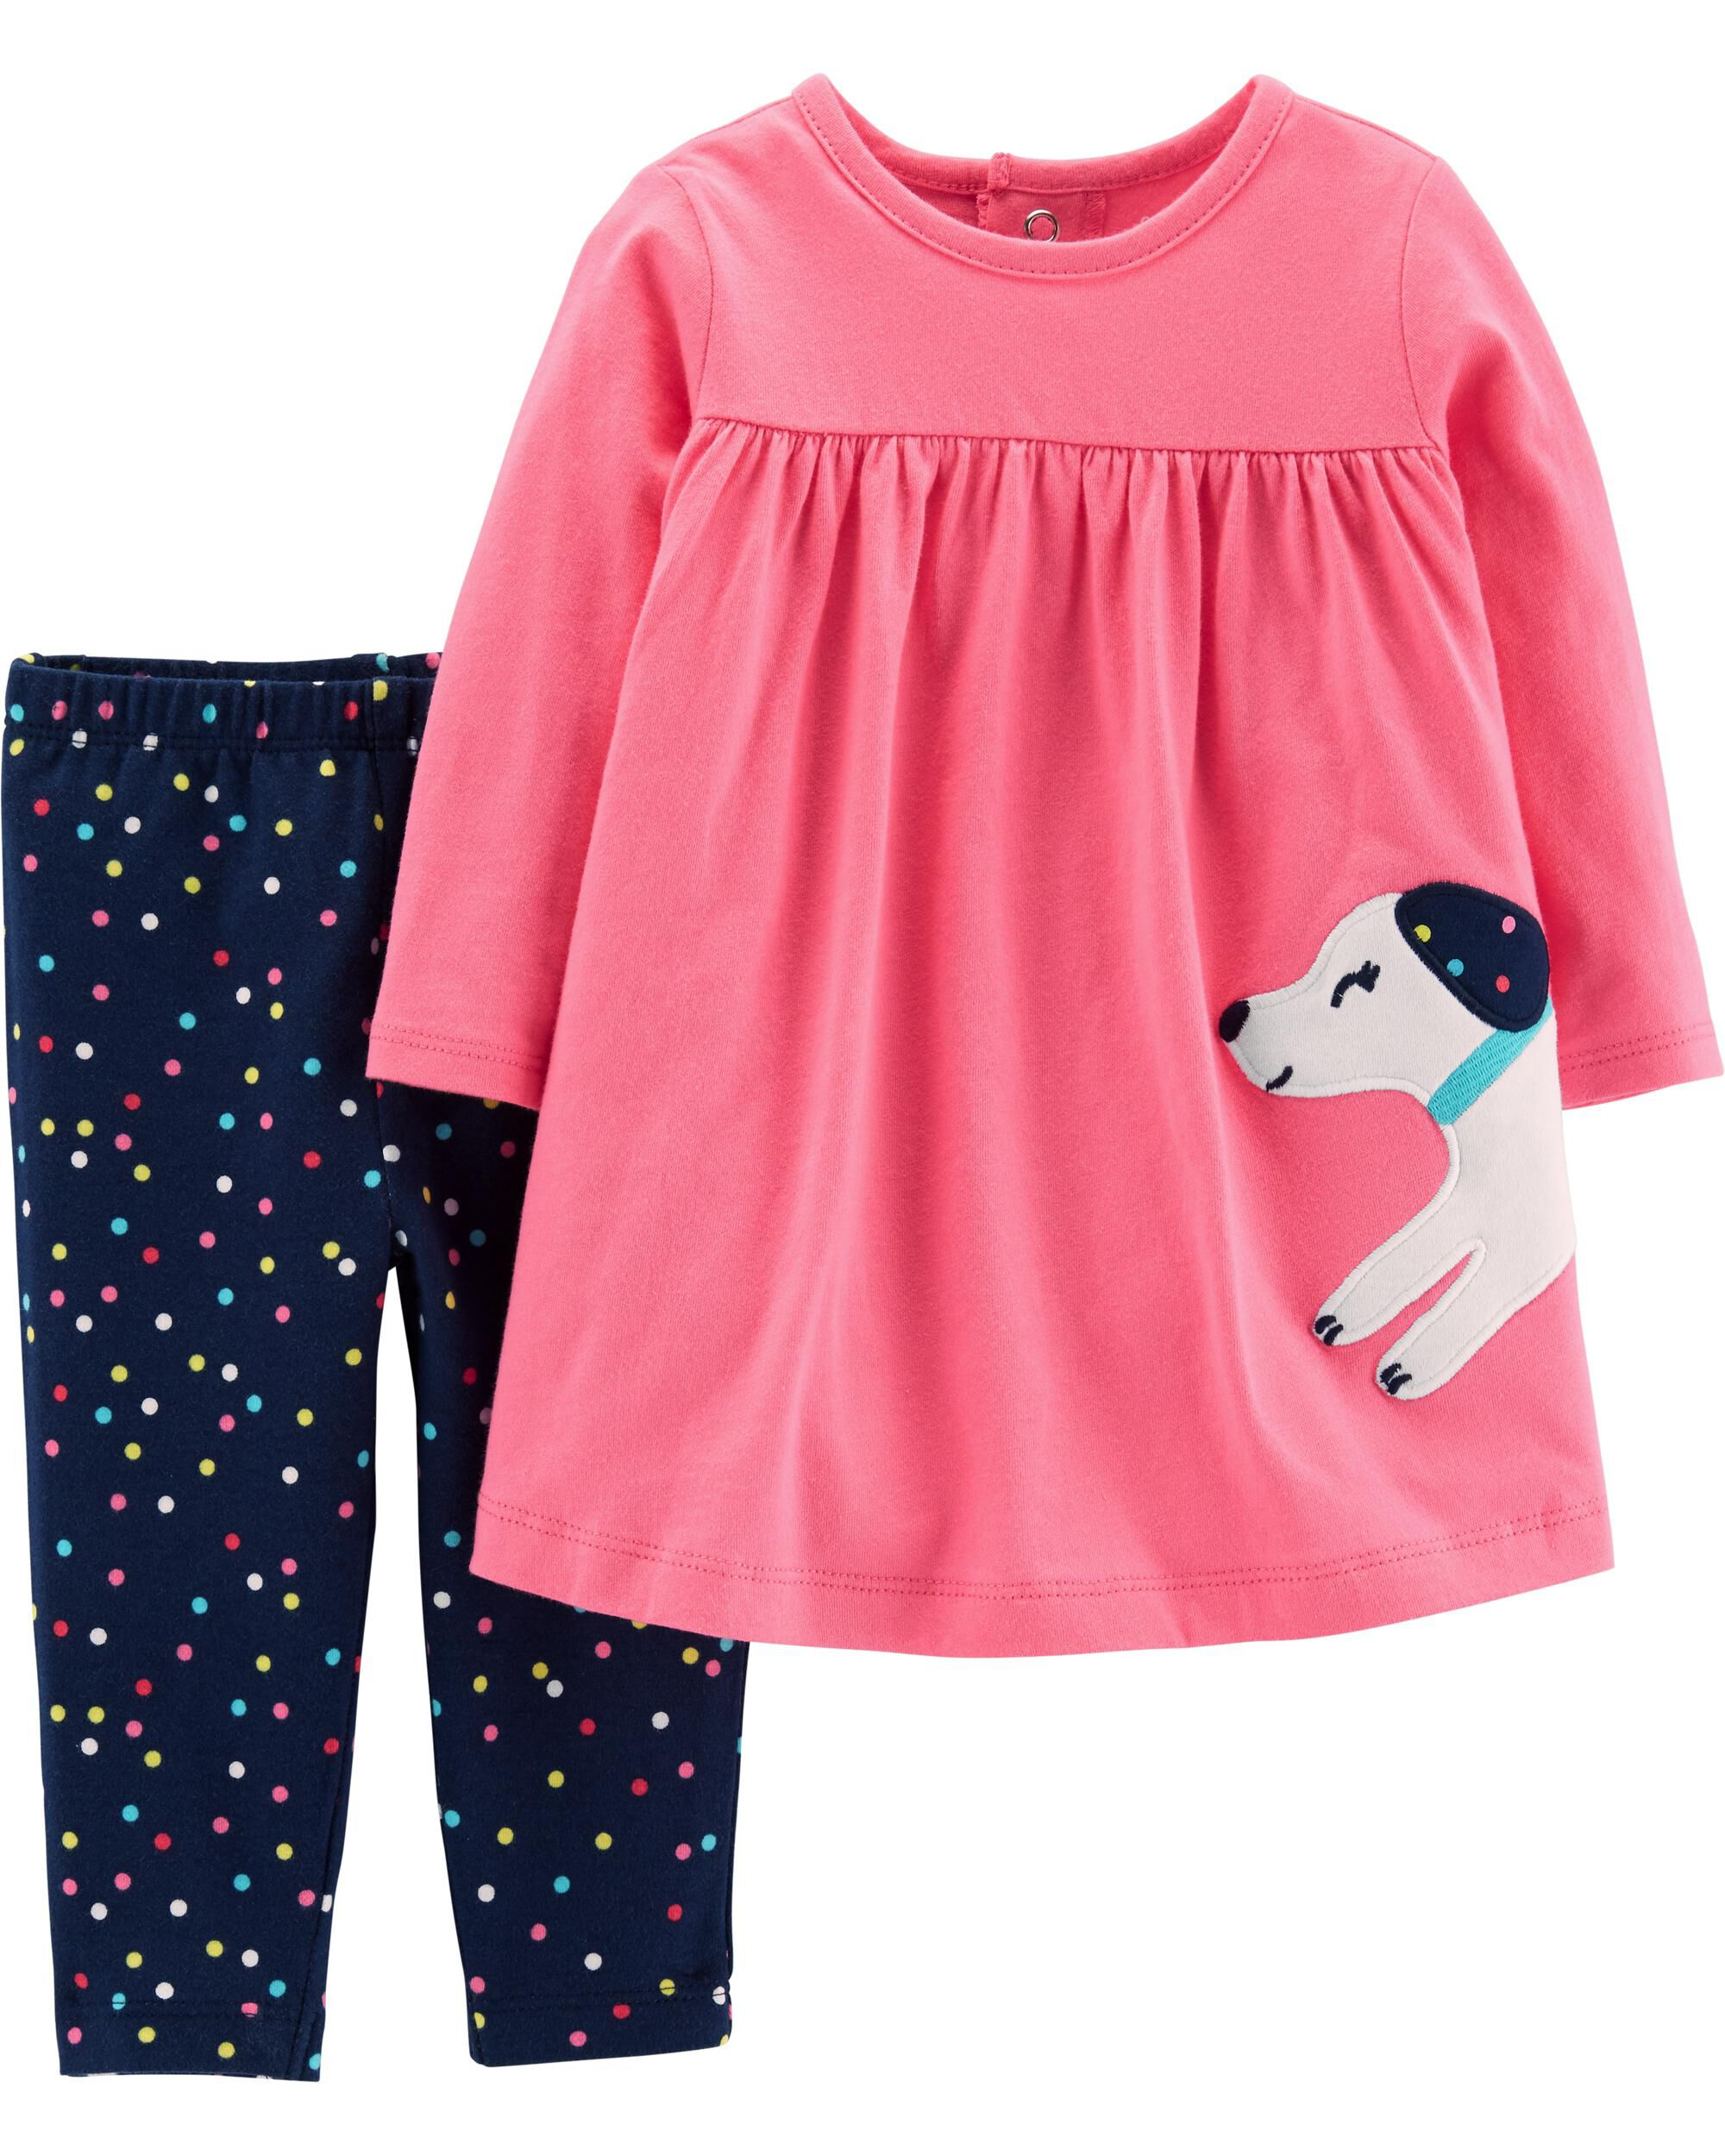 0a7e507e1 Baby Girl 2-Piece Dog Dress & Polka Dot Legging Set | Carters.com